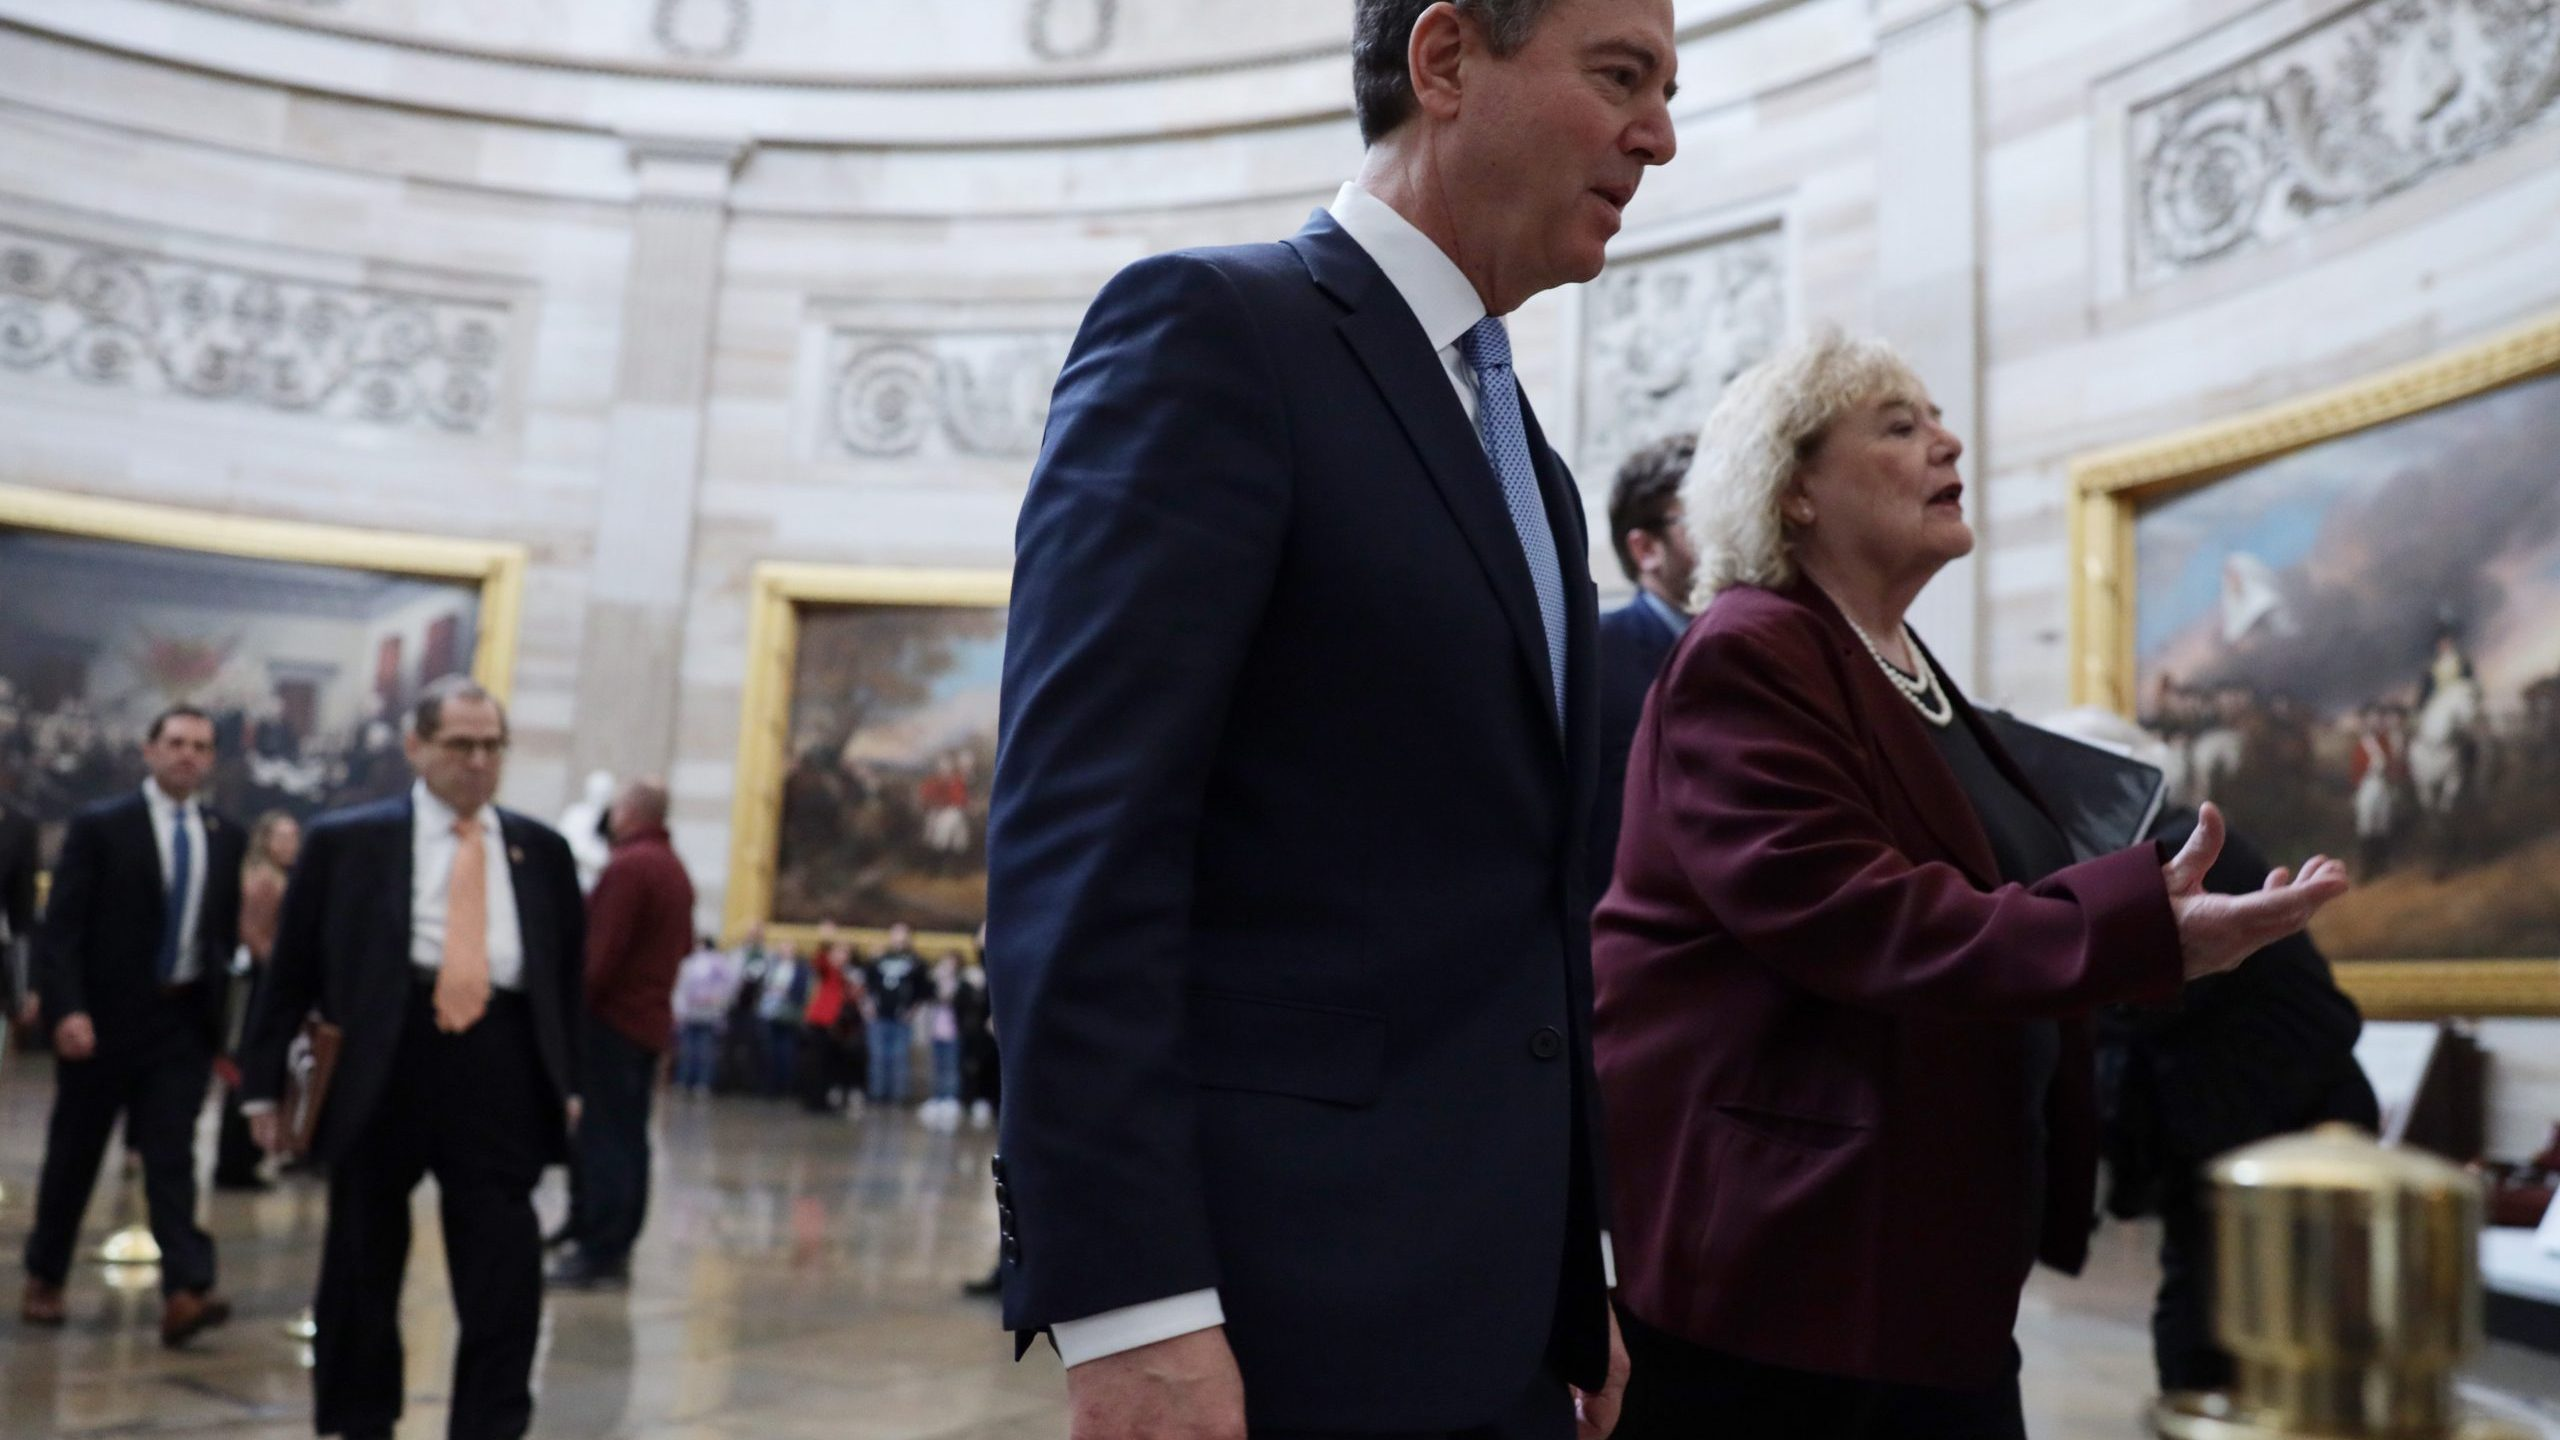 House impeachment managers Rep. Rep. Adam Schiff (D-CA) and Rep. Zoe Lofgren (D-CA) pass through the rotunda for the Senate impeachment trial against President Donald Trump at the U.S. Capitol Jan. 24, 2020 in Washington, D.C. (Credit: Alex Wong/Getty Images)